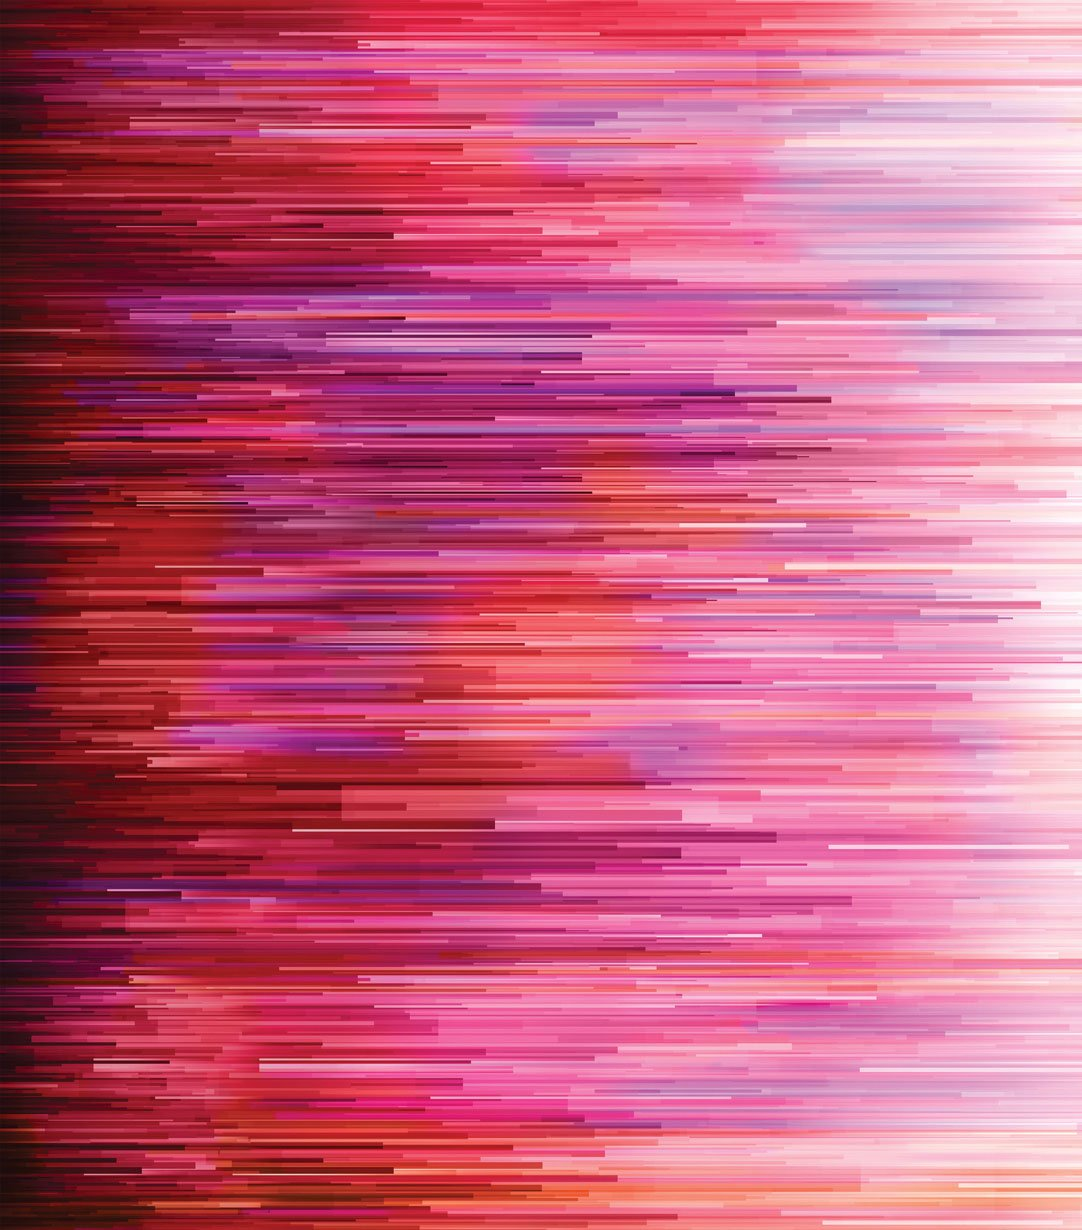 Gradients 33362-11D Reds Pinks from Moda